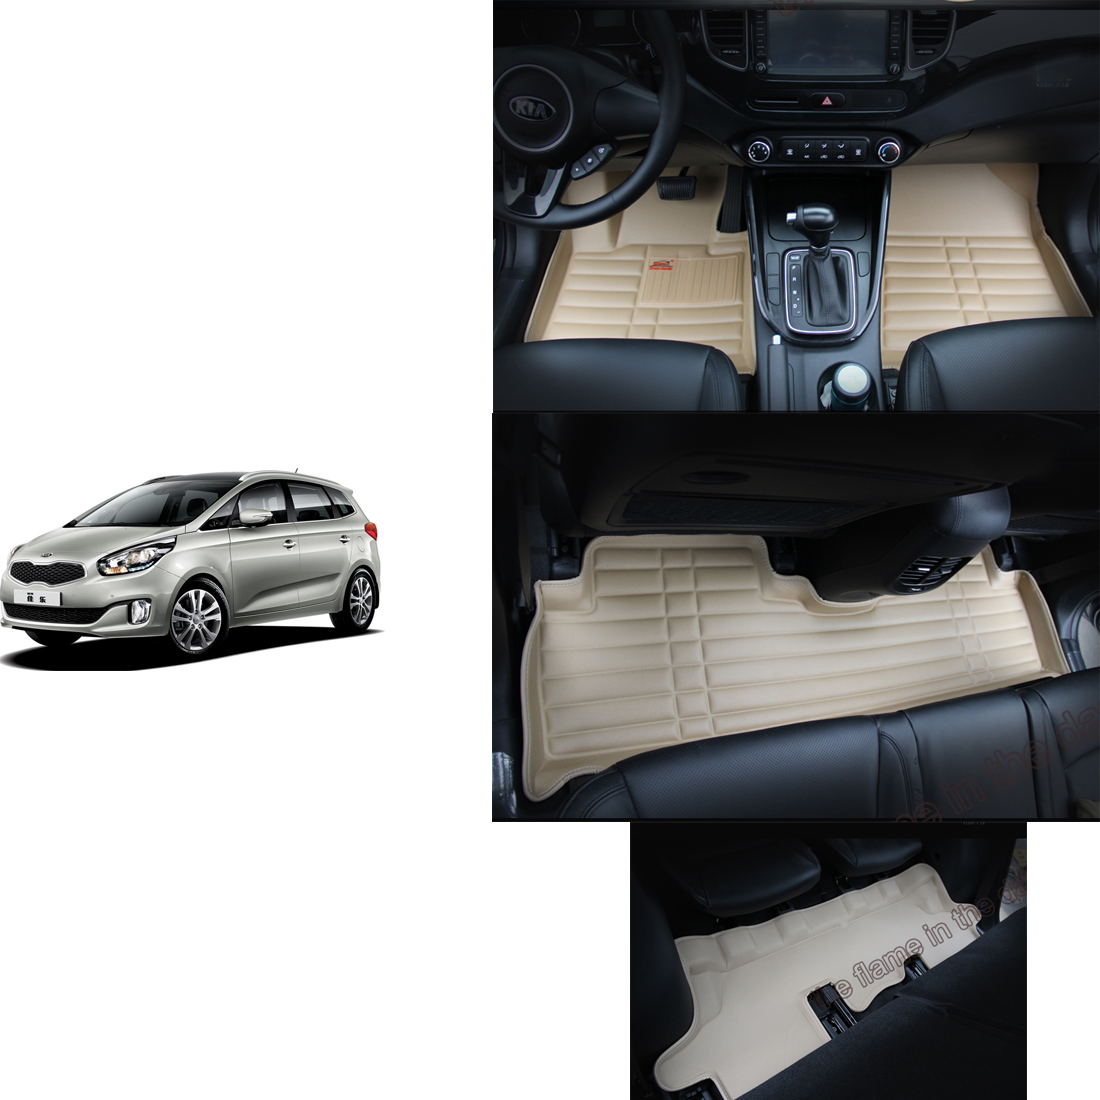 Floor mats kia - Free Shipping Leather Car Floor Mat Carpet Rug For Kia Rondo Carens 3rd Generation 2013 2014 2015 2016 2017 7 Seater Mat 3 Rows